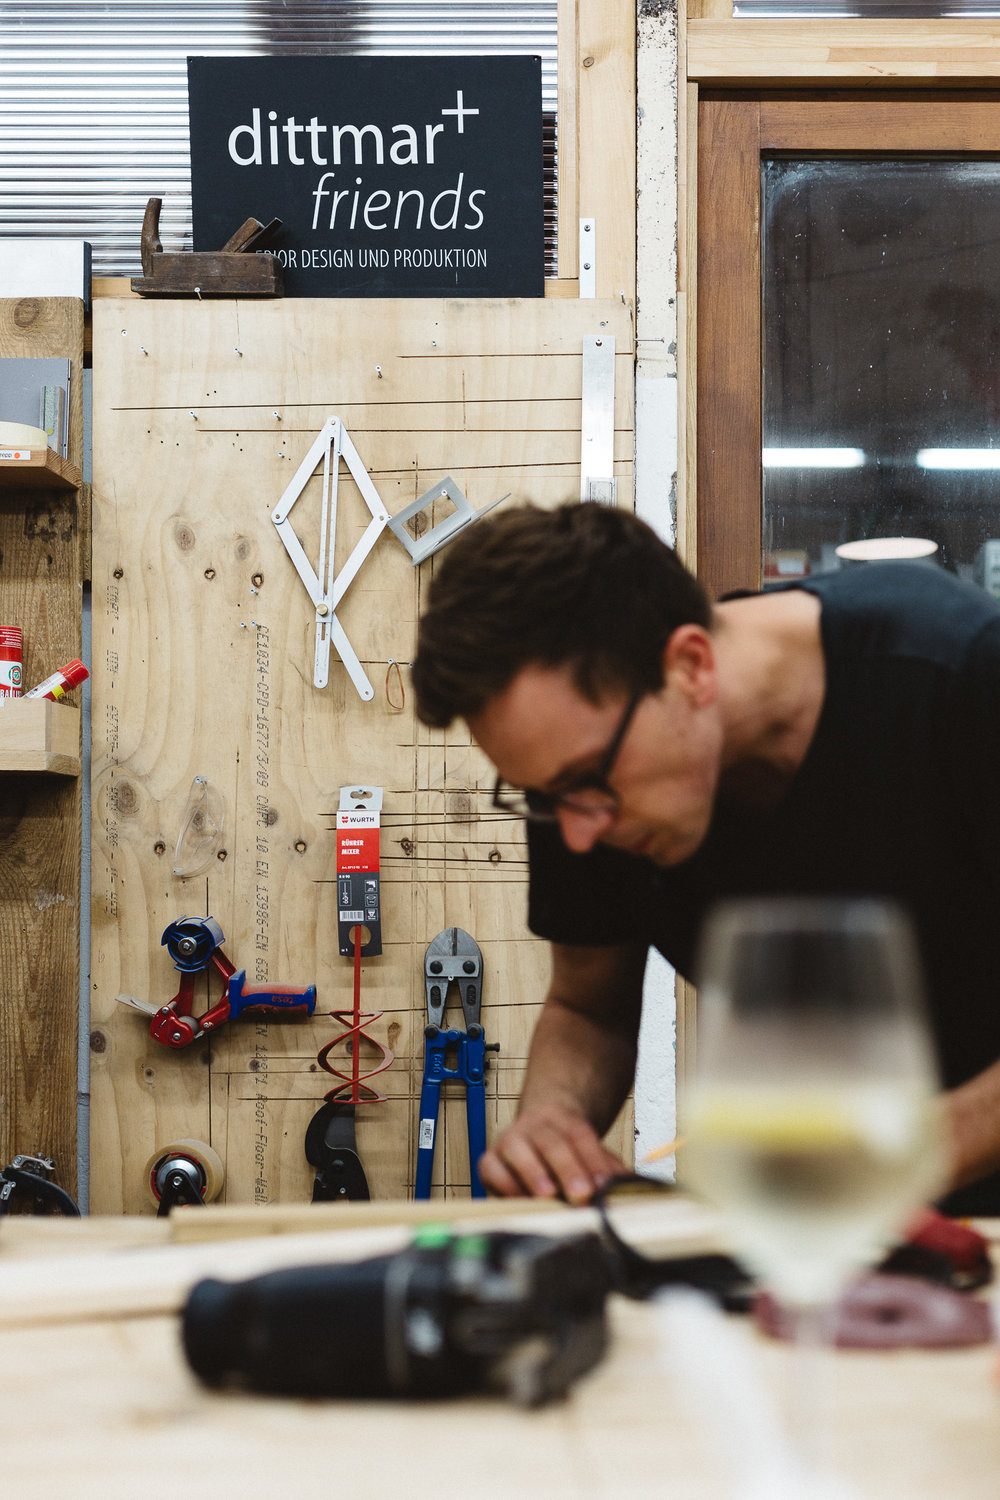 """DIY-WORKSHOP """"Kinderküche""""   06/2016  We love to woodwork! So why don't we build a kitchen for our children by ourselves? That was the idea, that ended up in a workshop by  Dittmar and friends  at Willner Brauerei Berlin, Pankow.   see more >"""